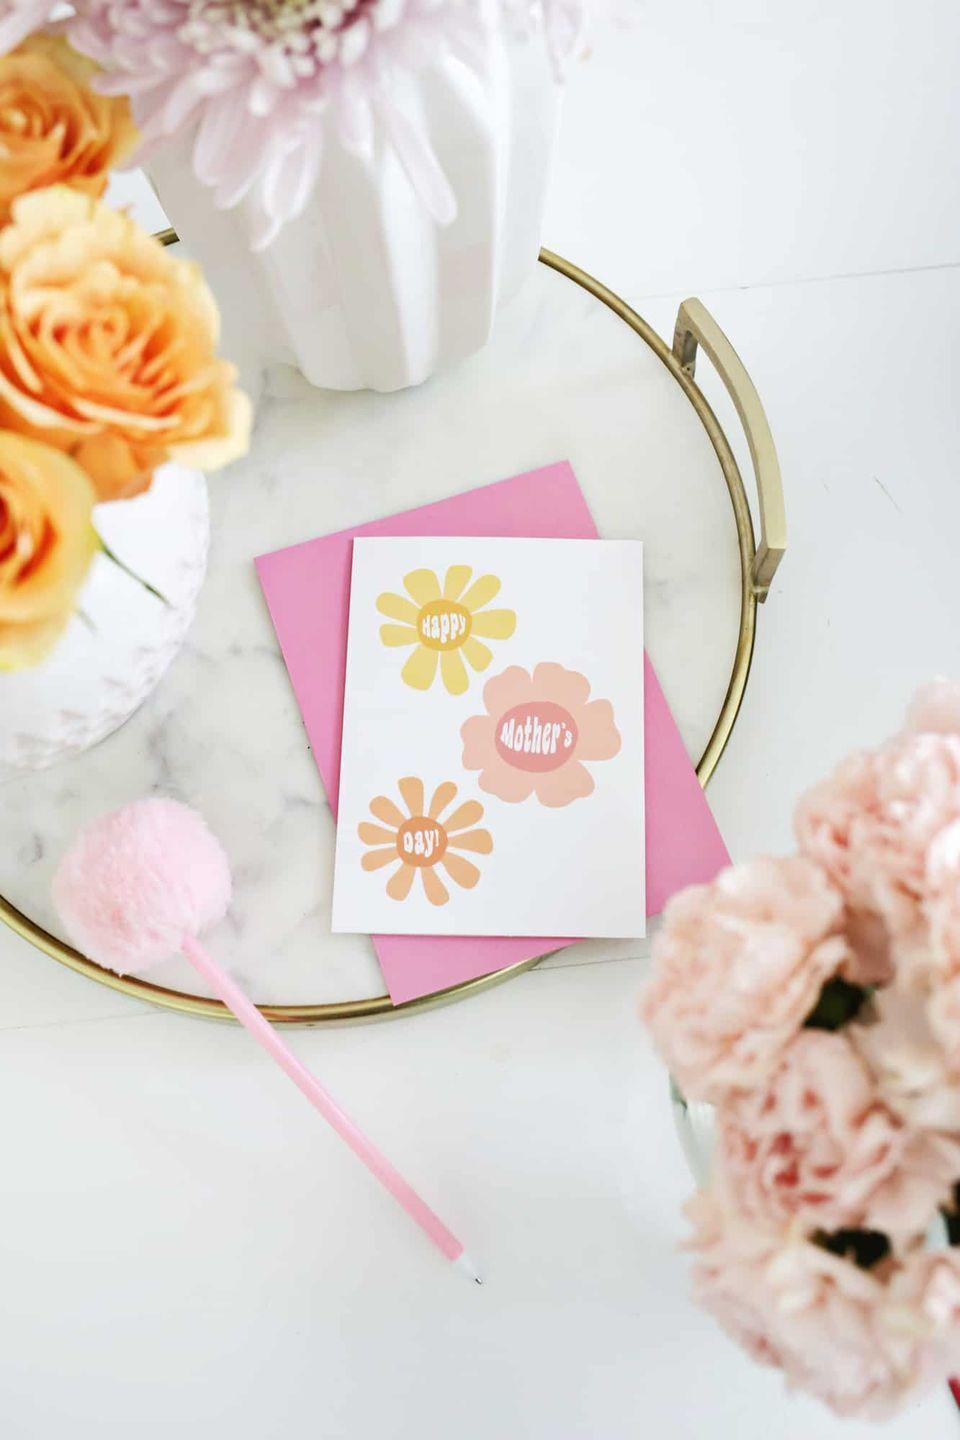 """<p>If your mom grew up in the '70s, this groovy flower power card will make her smile. It's about as minimal as DIY gets, so even if you have very little time to craft, you can still create something memorable. </p><p><strong>Get the printable at <a href=""""https://abeautifulmess.com/mothers-day-card-printables-theyre-free/"""" rel=""""nofollow noopener"""" target=""""_blank"""" data-ylk=""""slk:A Beautiful Mess"""" class=""""link rapid-noclick-resp"""">A Beautiful Mess</a>. </strong></p><p><a class=""""link rapid-noclick-resp"""" href=""""https://www.amazon.com/Sharpie-S-Gel-Medium-Point-0-7mm/dp/B082PN4X5J?tag=syn-yahoo-20&ascsubtag=%5Bartid%7C2164.g.35668391%5Bsrc%7Cyahoo-us"""" rel=""""nofollow noopener"""" target=""""_blank"""" data-ylk=""""slk:SHOP SHARPIE PENS"""">SHOP SHARPIE PENS</a></p>"""